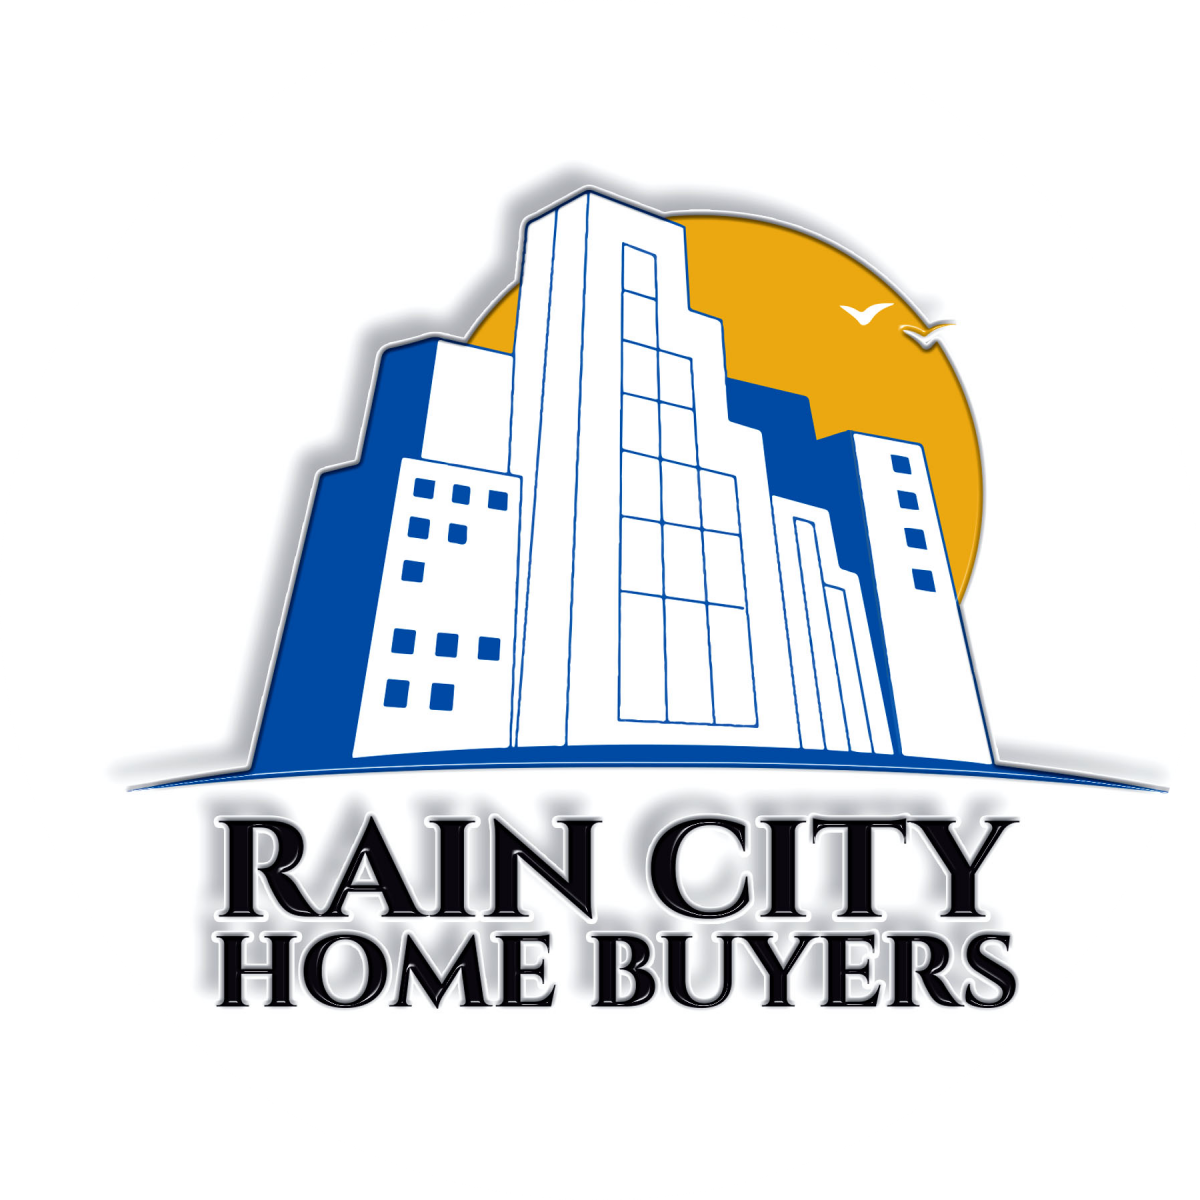 Rain City Home Buyers  logo